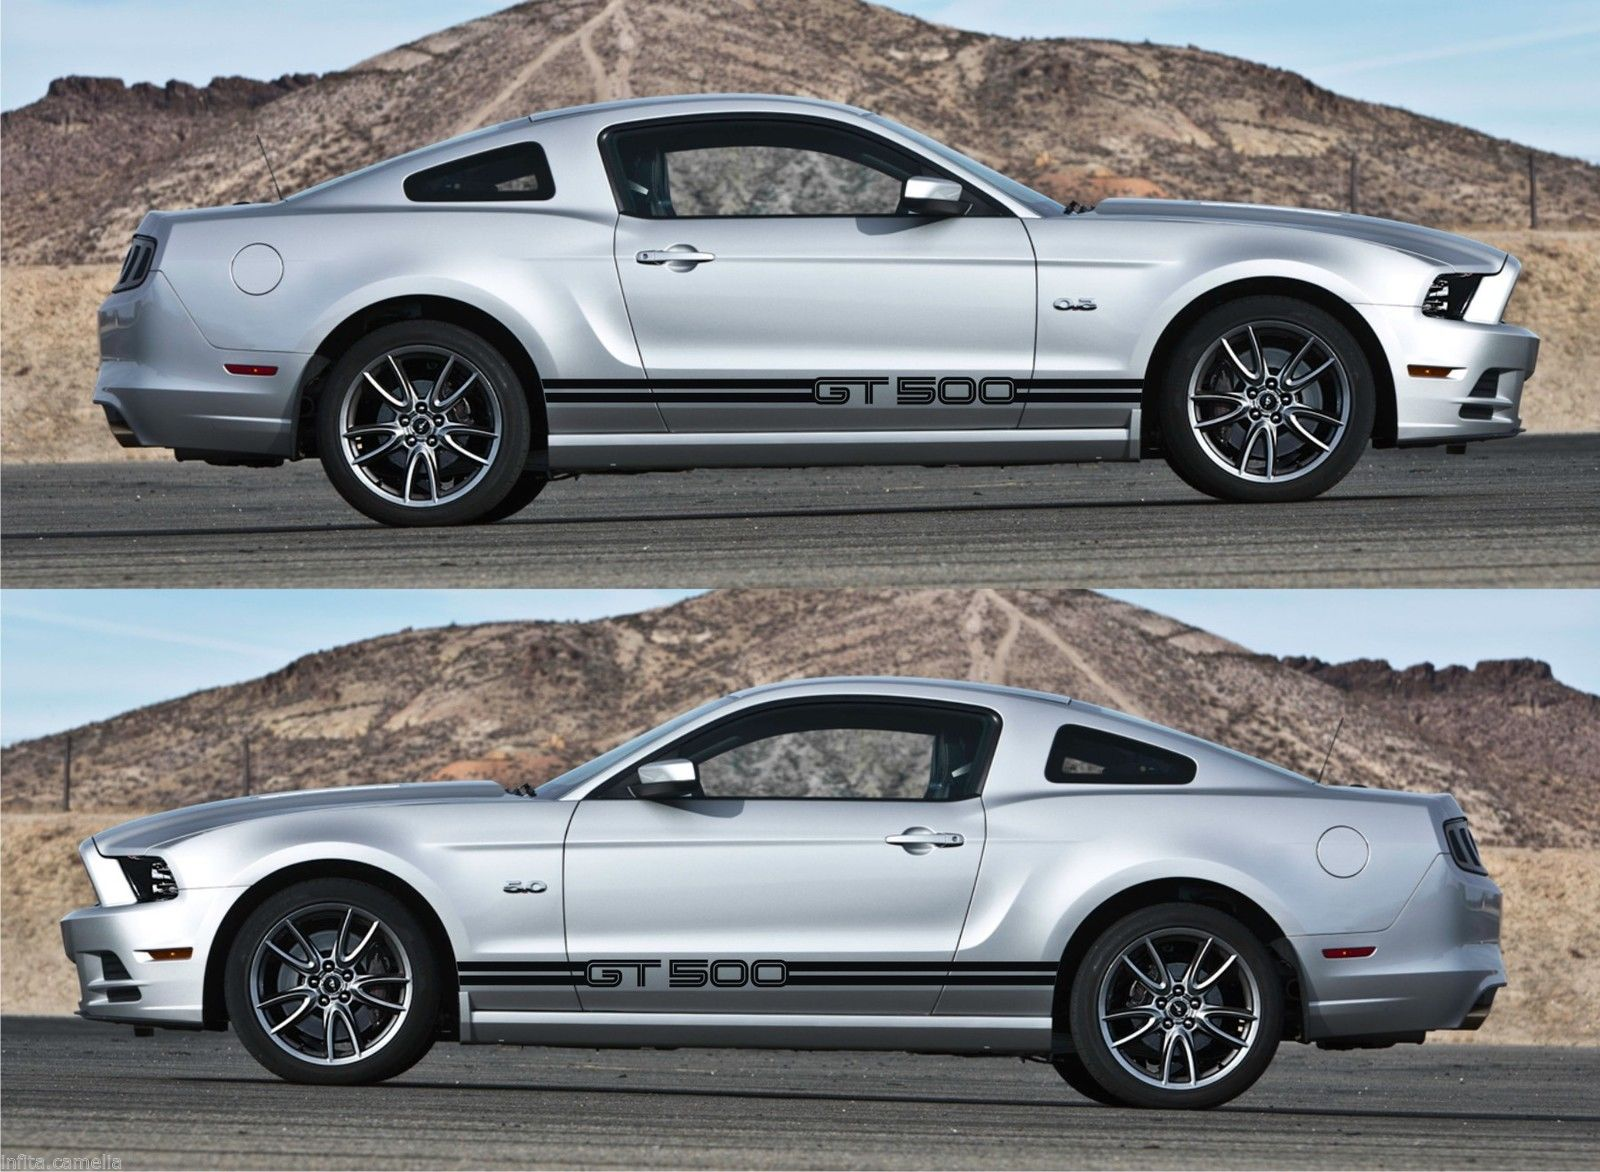 Ssk067 ford mustang shelby gt 500 racing car stripes v6 v8 kit sticker v3